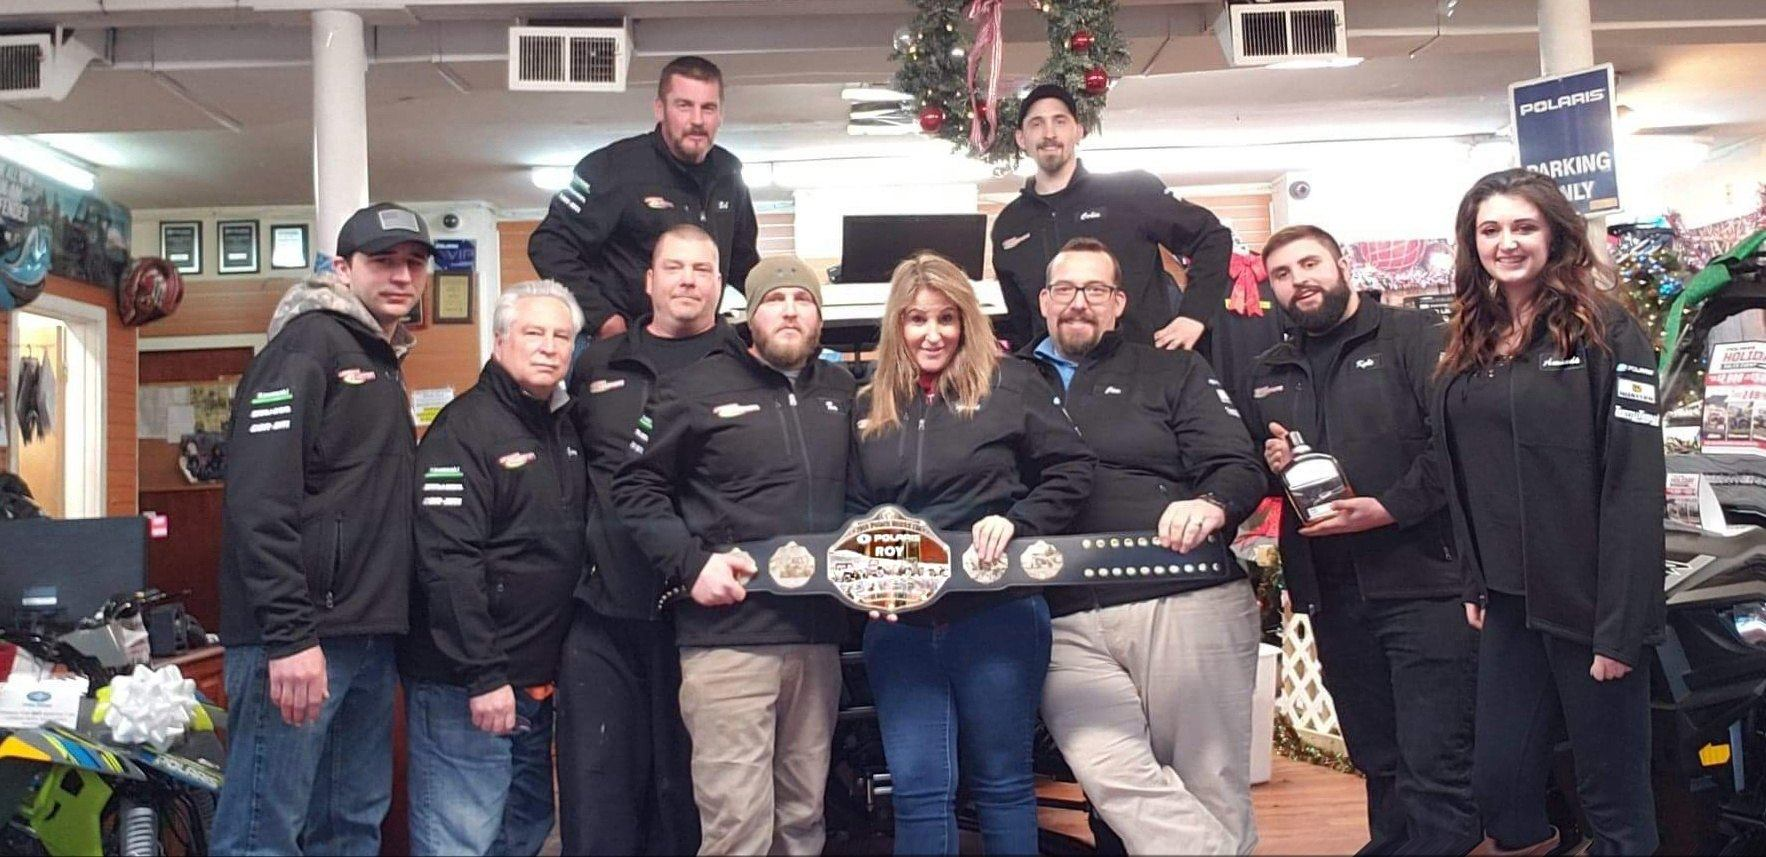 Ledgewood Powersports is the POLARIS 2018 RETAILER OF THE YEAR